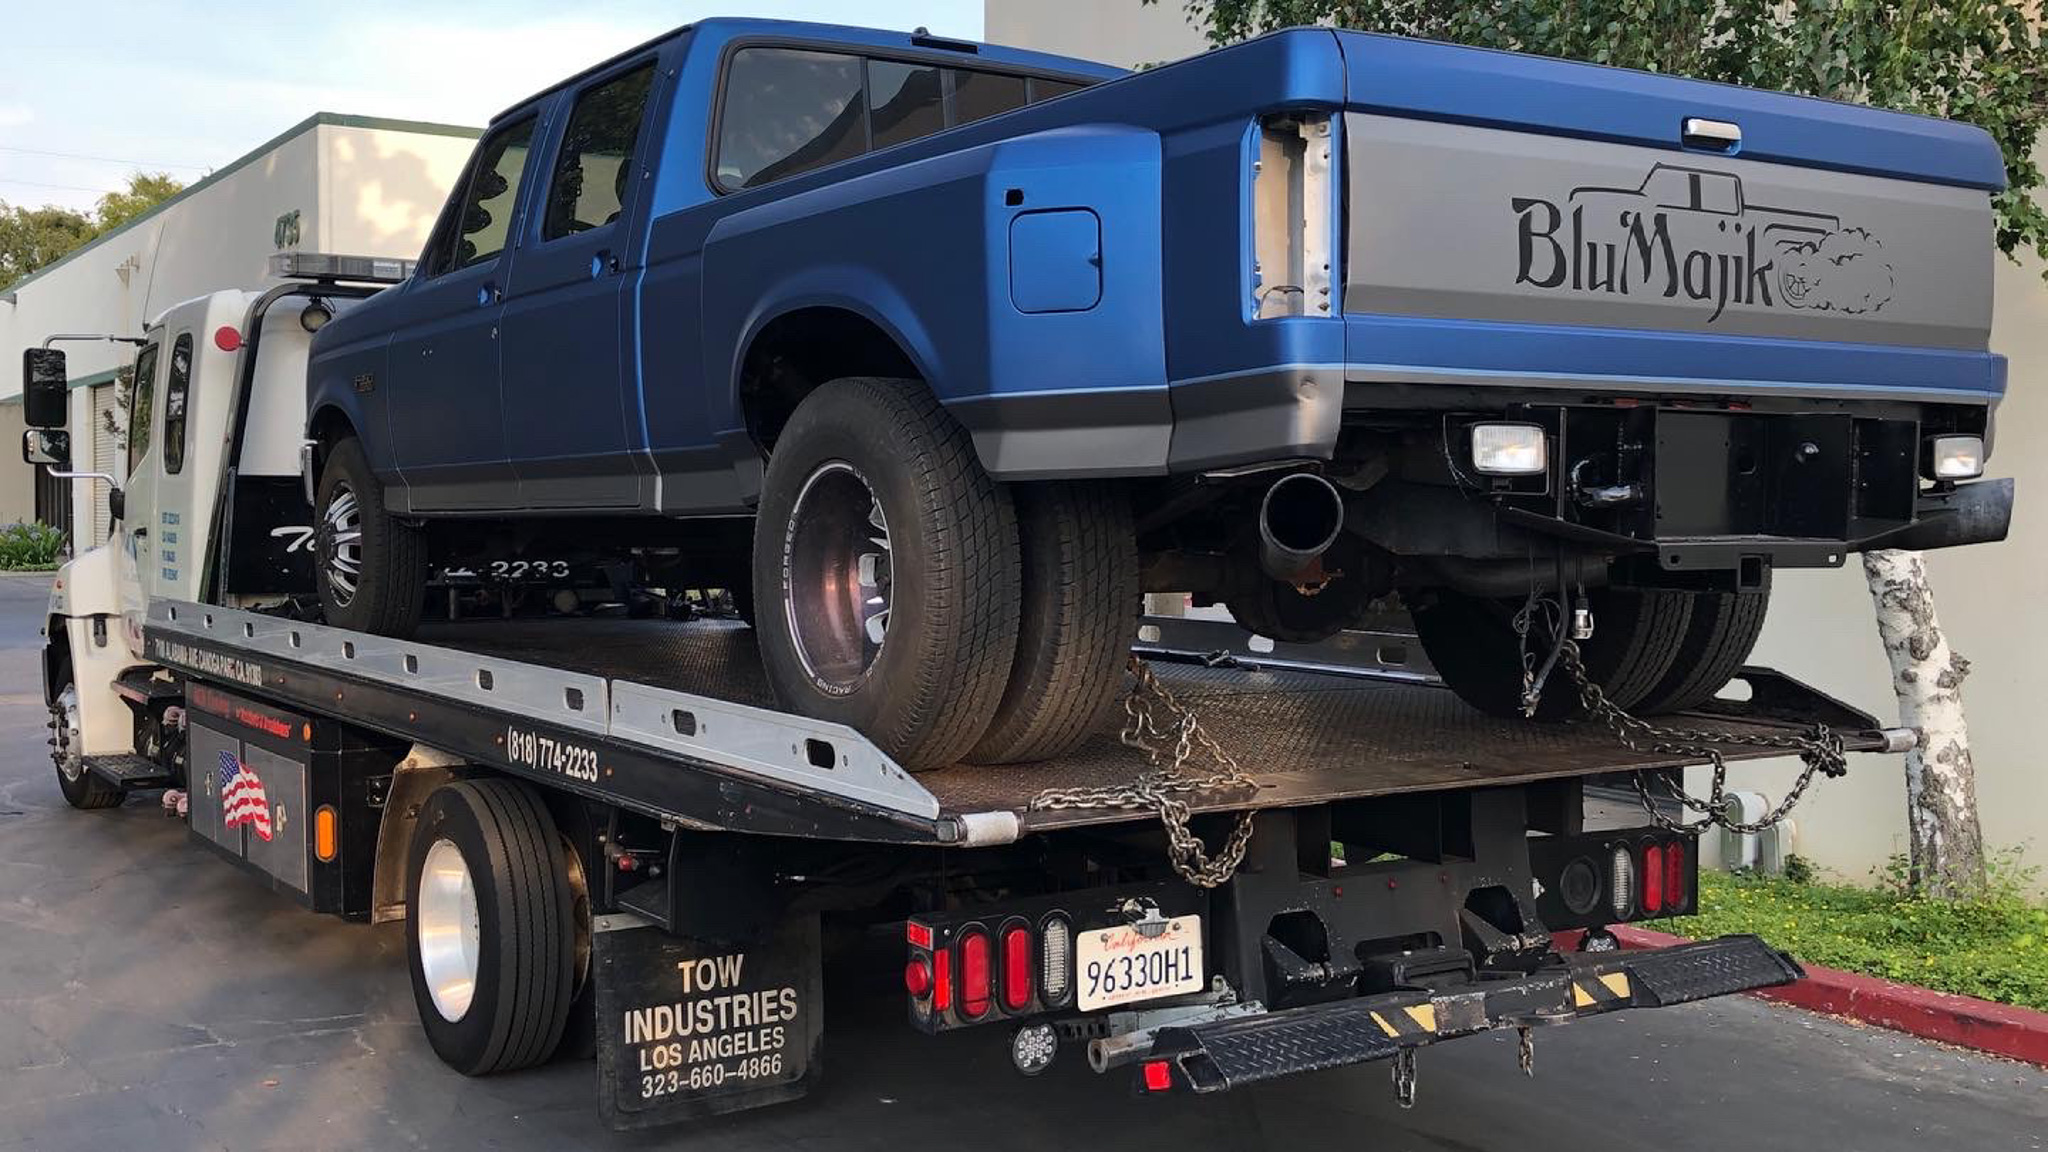 Project BluMajik Ford F-350: In The Home Stretch